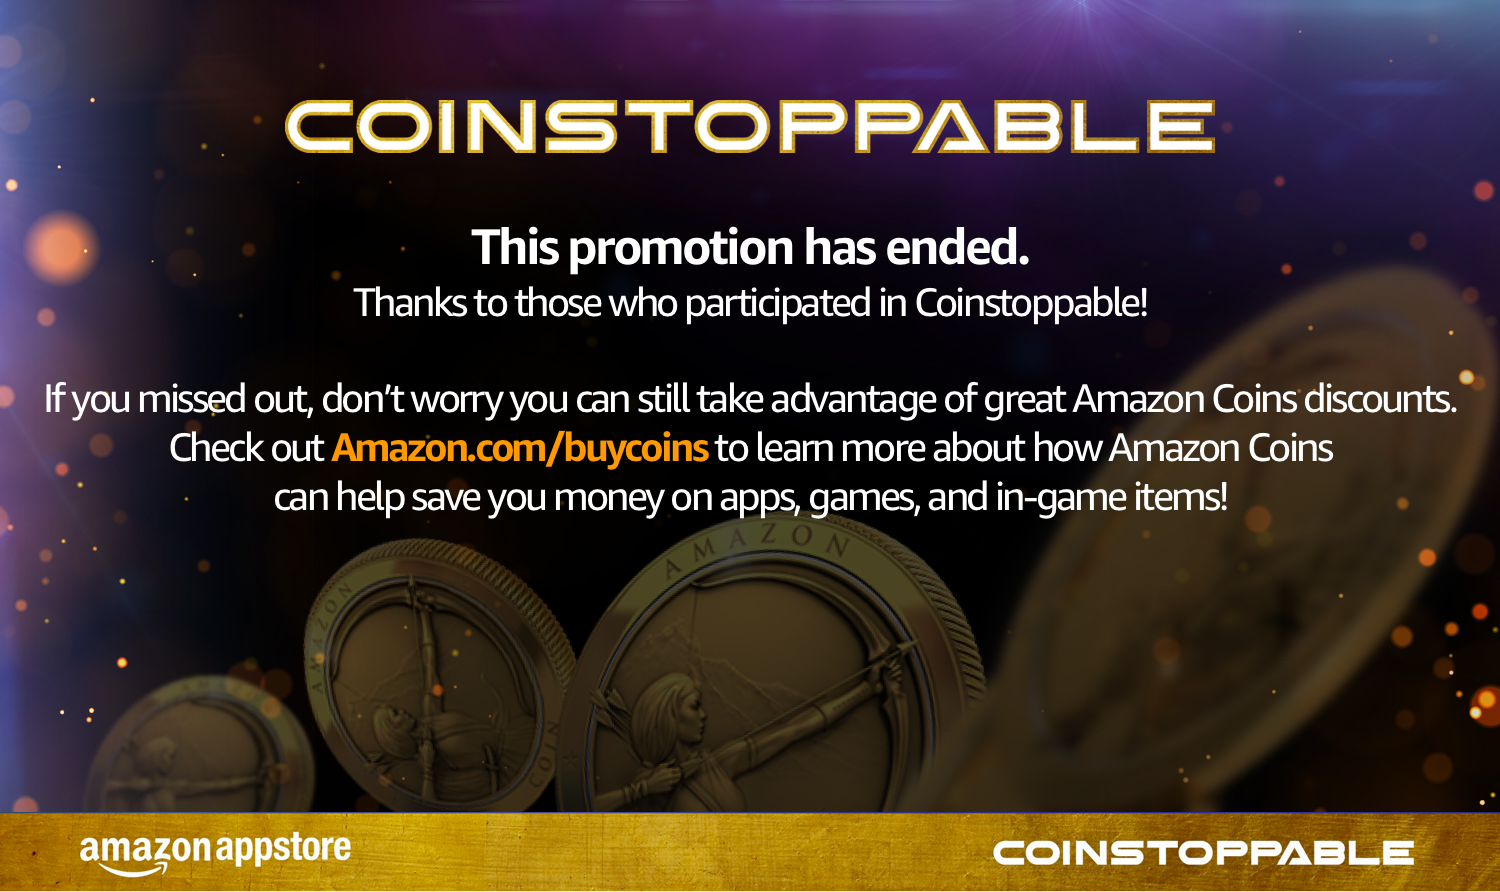 Coinstoppable